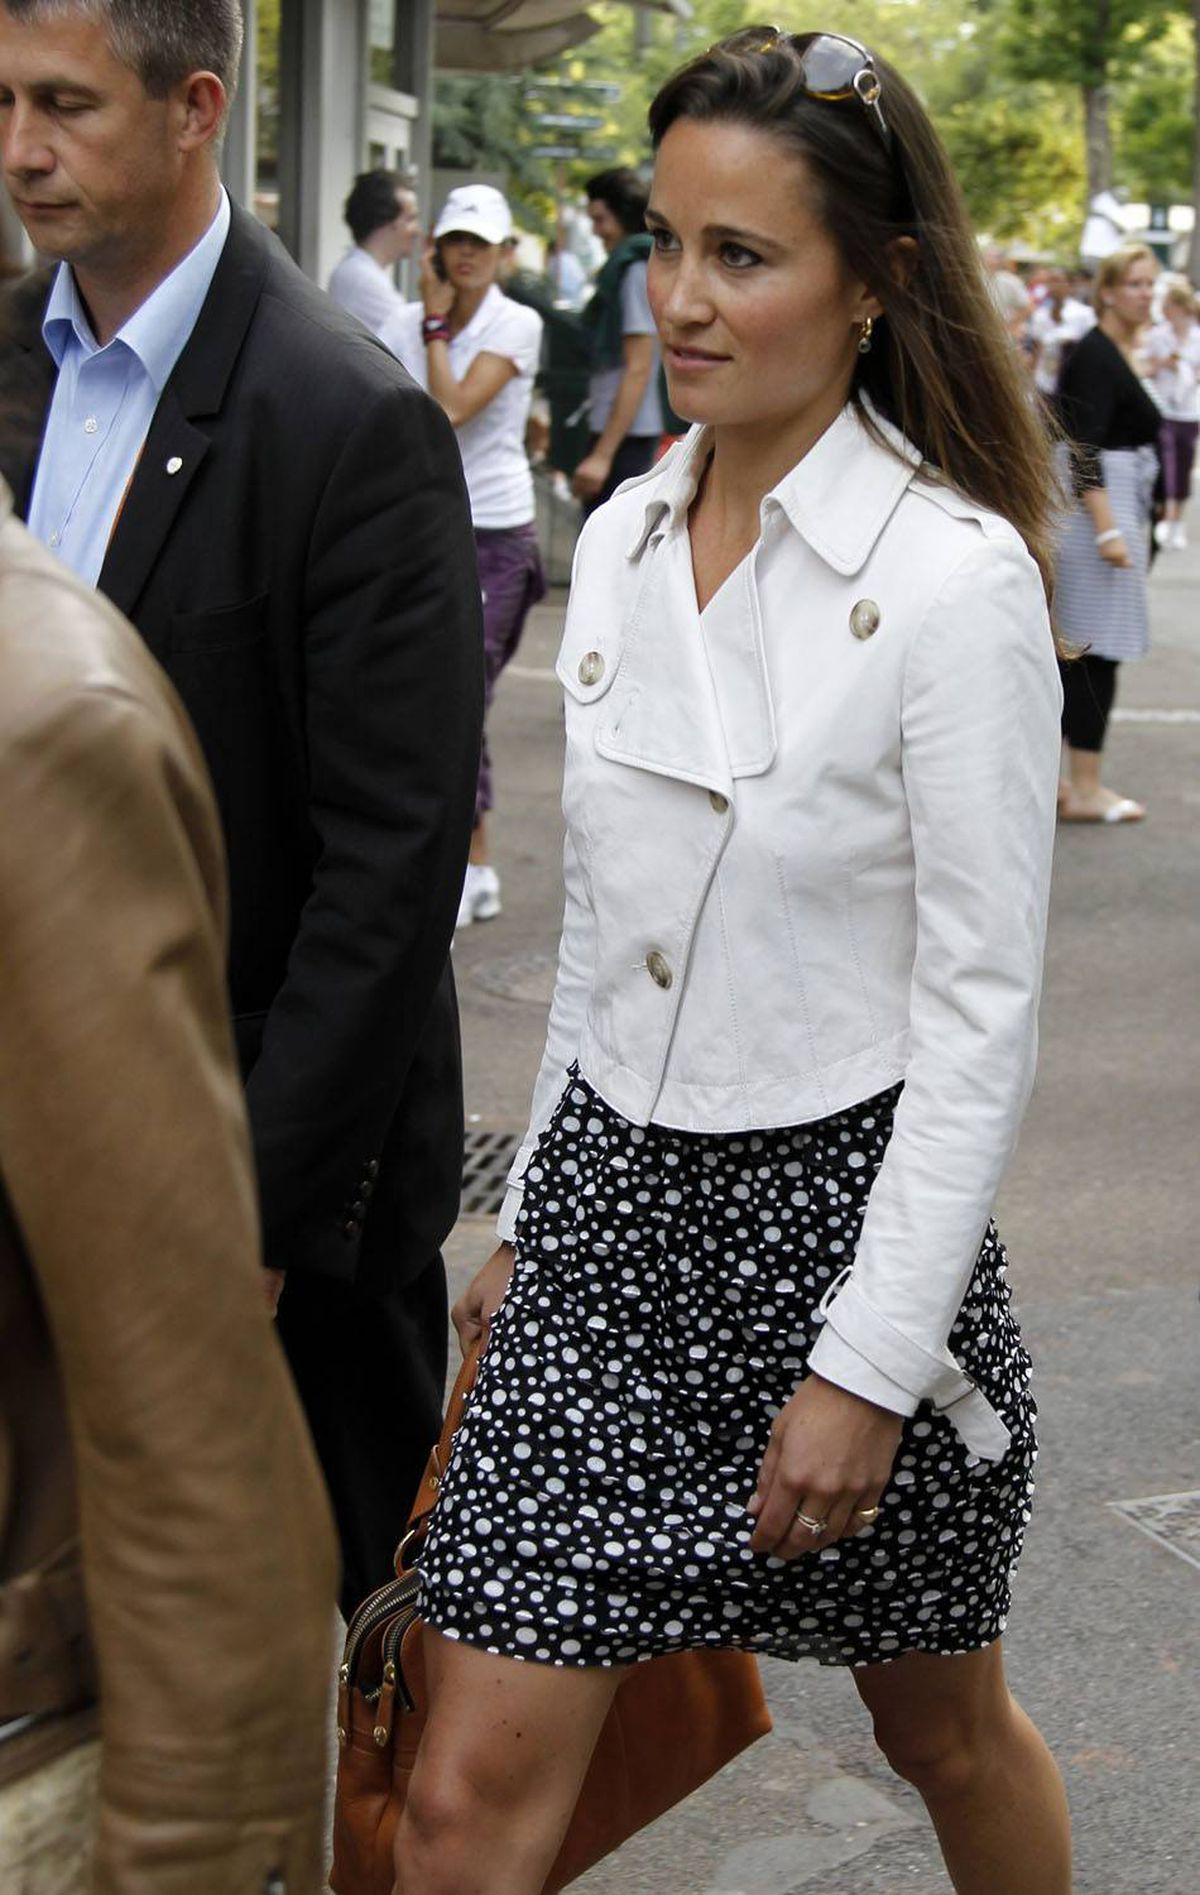 She also attended the French Open in Paris (because one tournament is never enough).